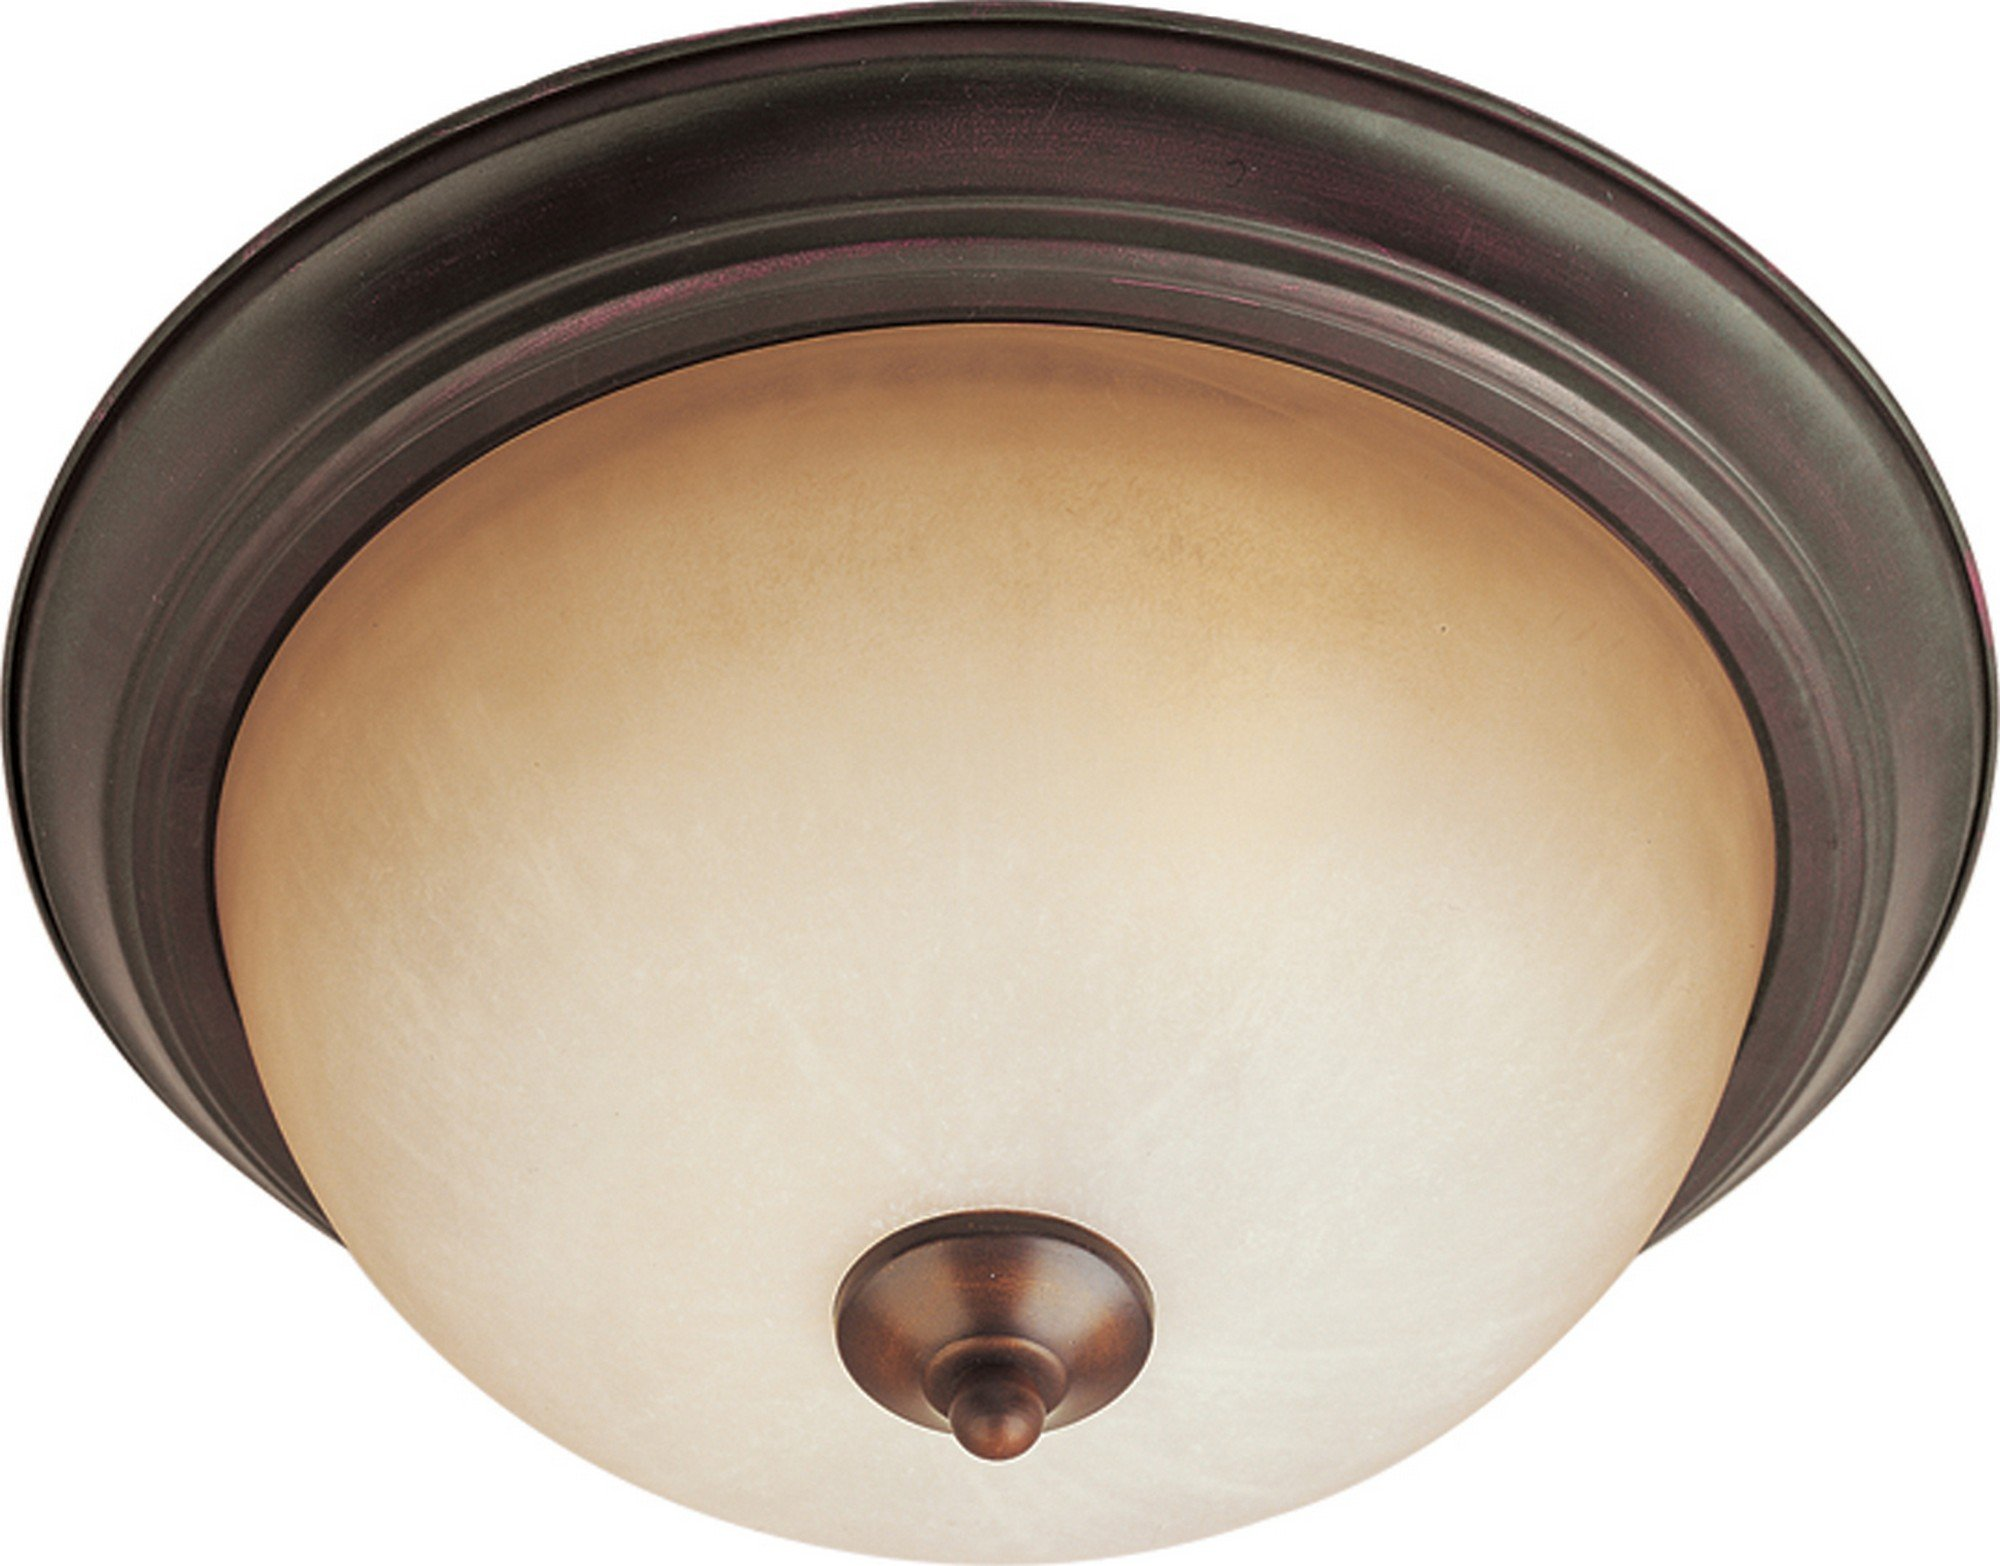 Maxim 5840WSOI Essentials 1-Light Flush Mount, Oil Rubbed Bronze Finish, Wilshire Glass, MB Incandescent Incandescent Bulb , 40W Max., Dry Safety Rating, 2900K Color Temp, Standard Dimmable, Glass Shade Material, 4500 Rated Lumens